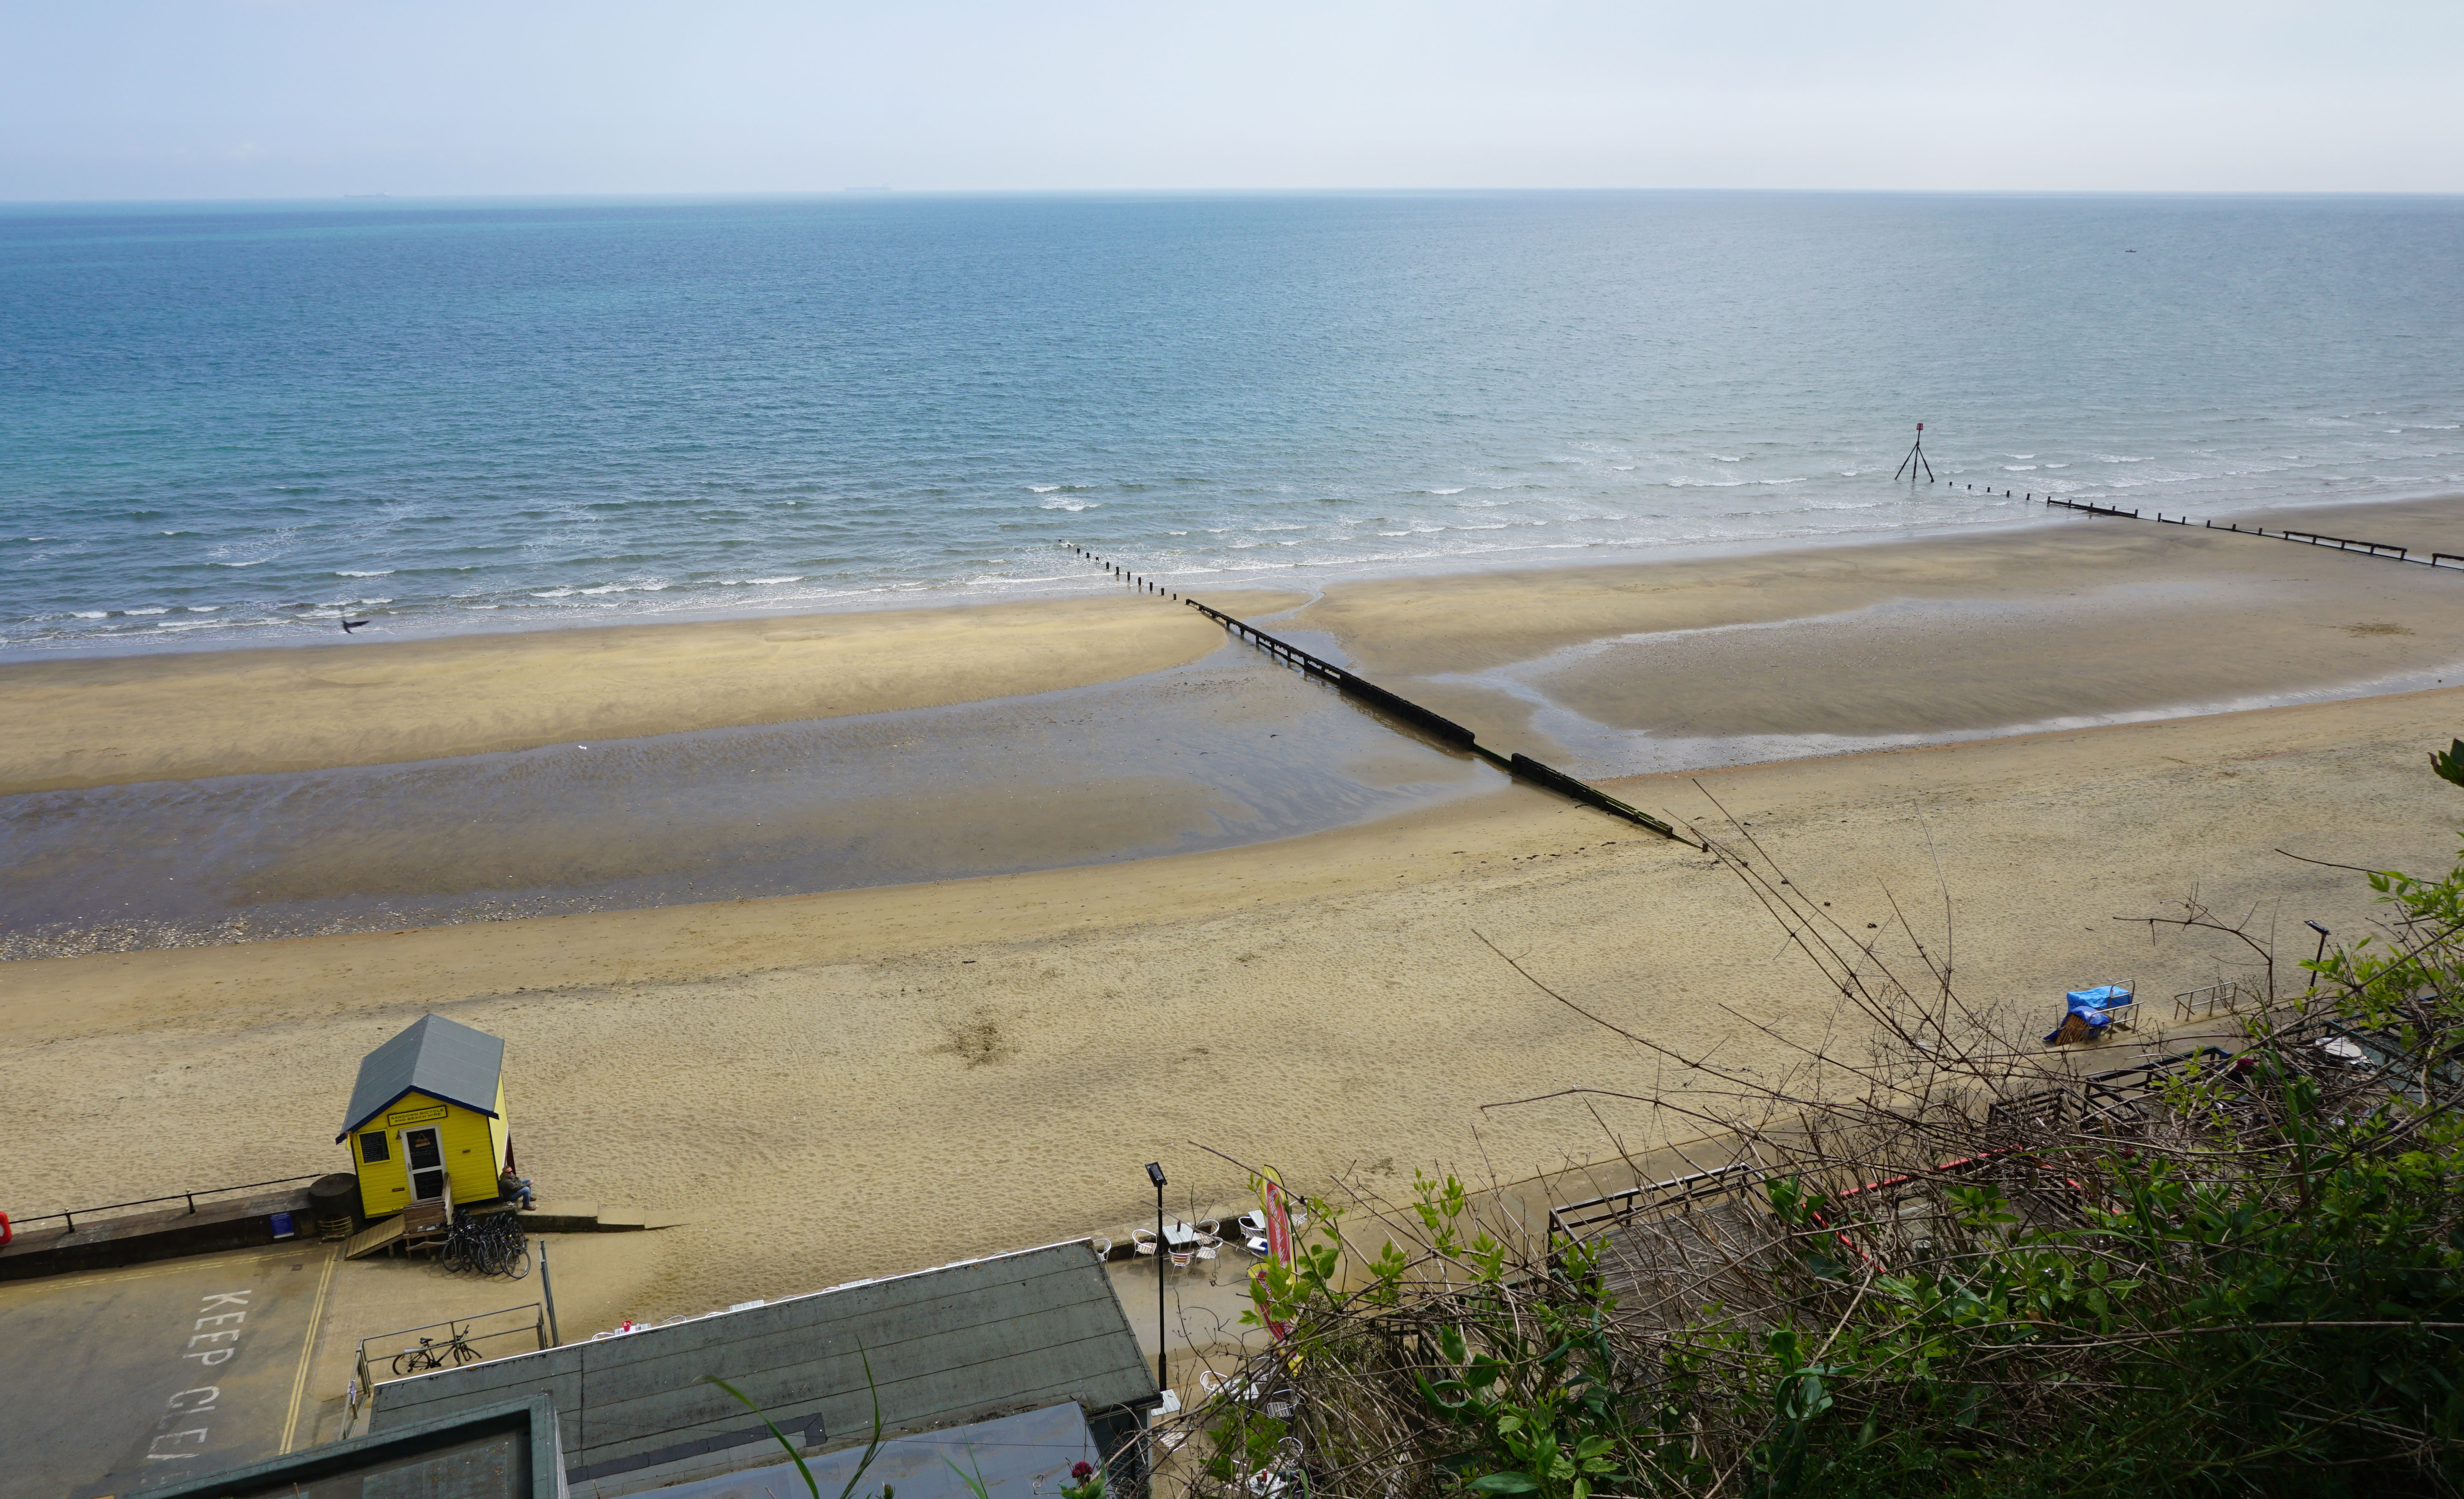 Looking-down-to-Beach-from-Cliff-Path.-Sandown